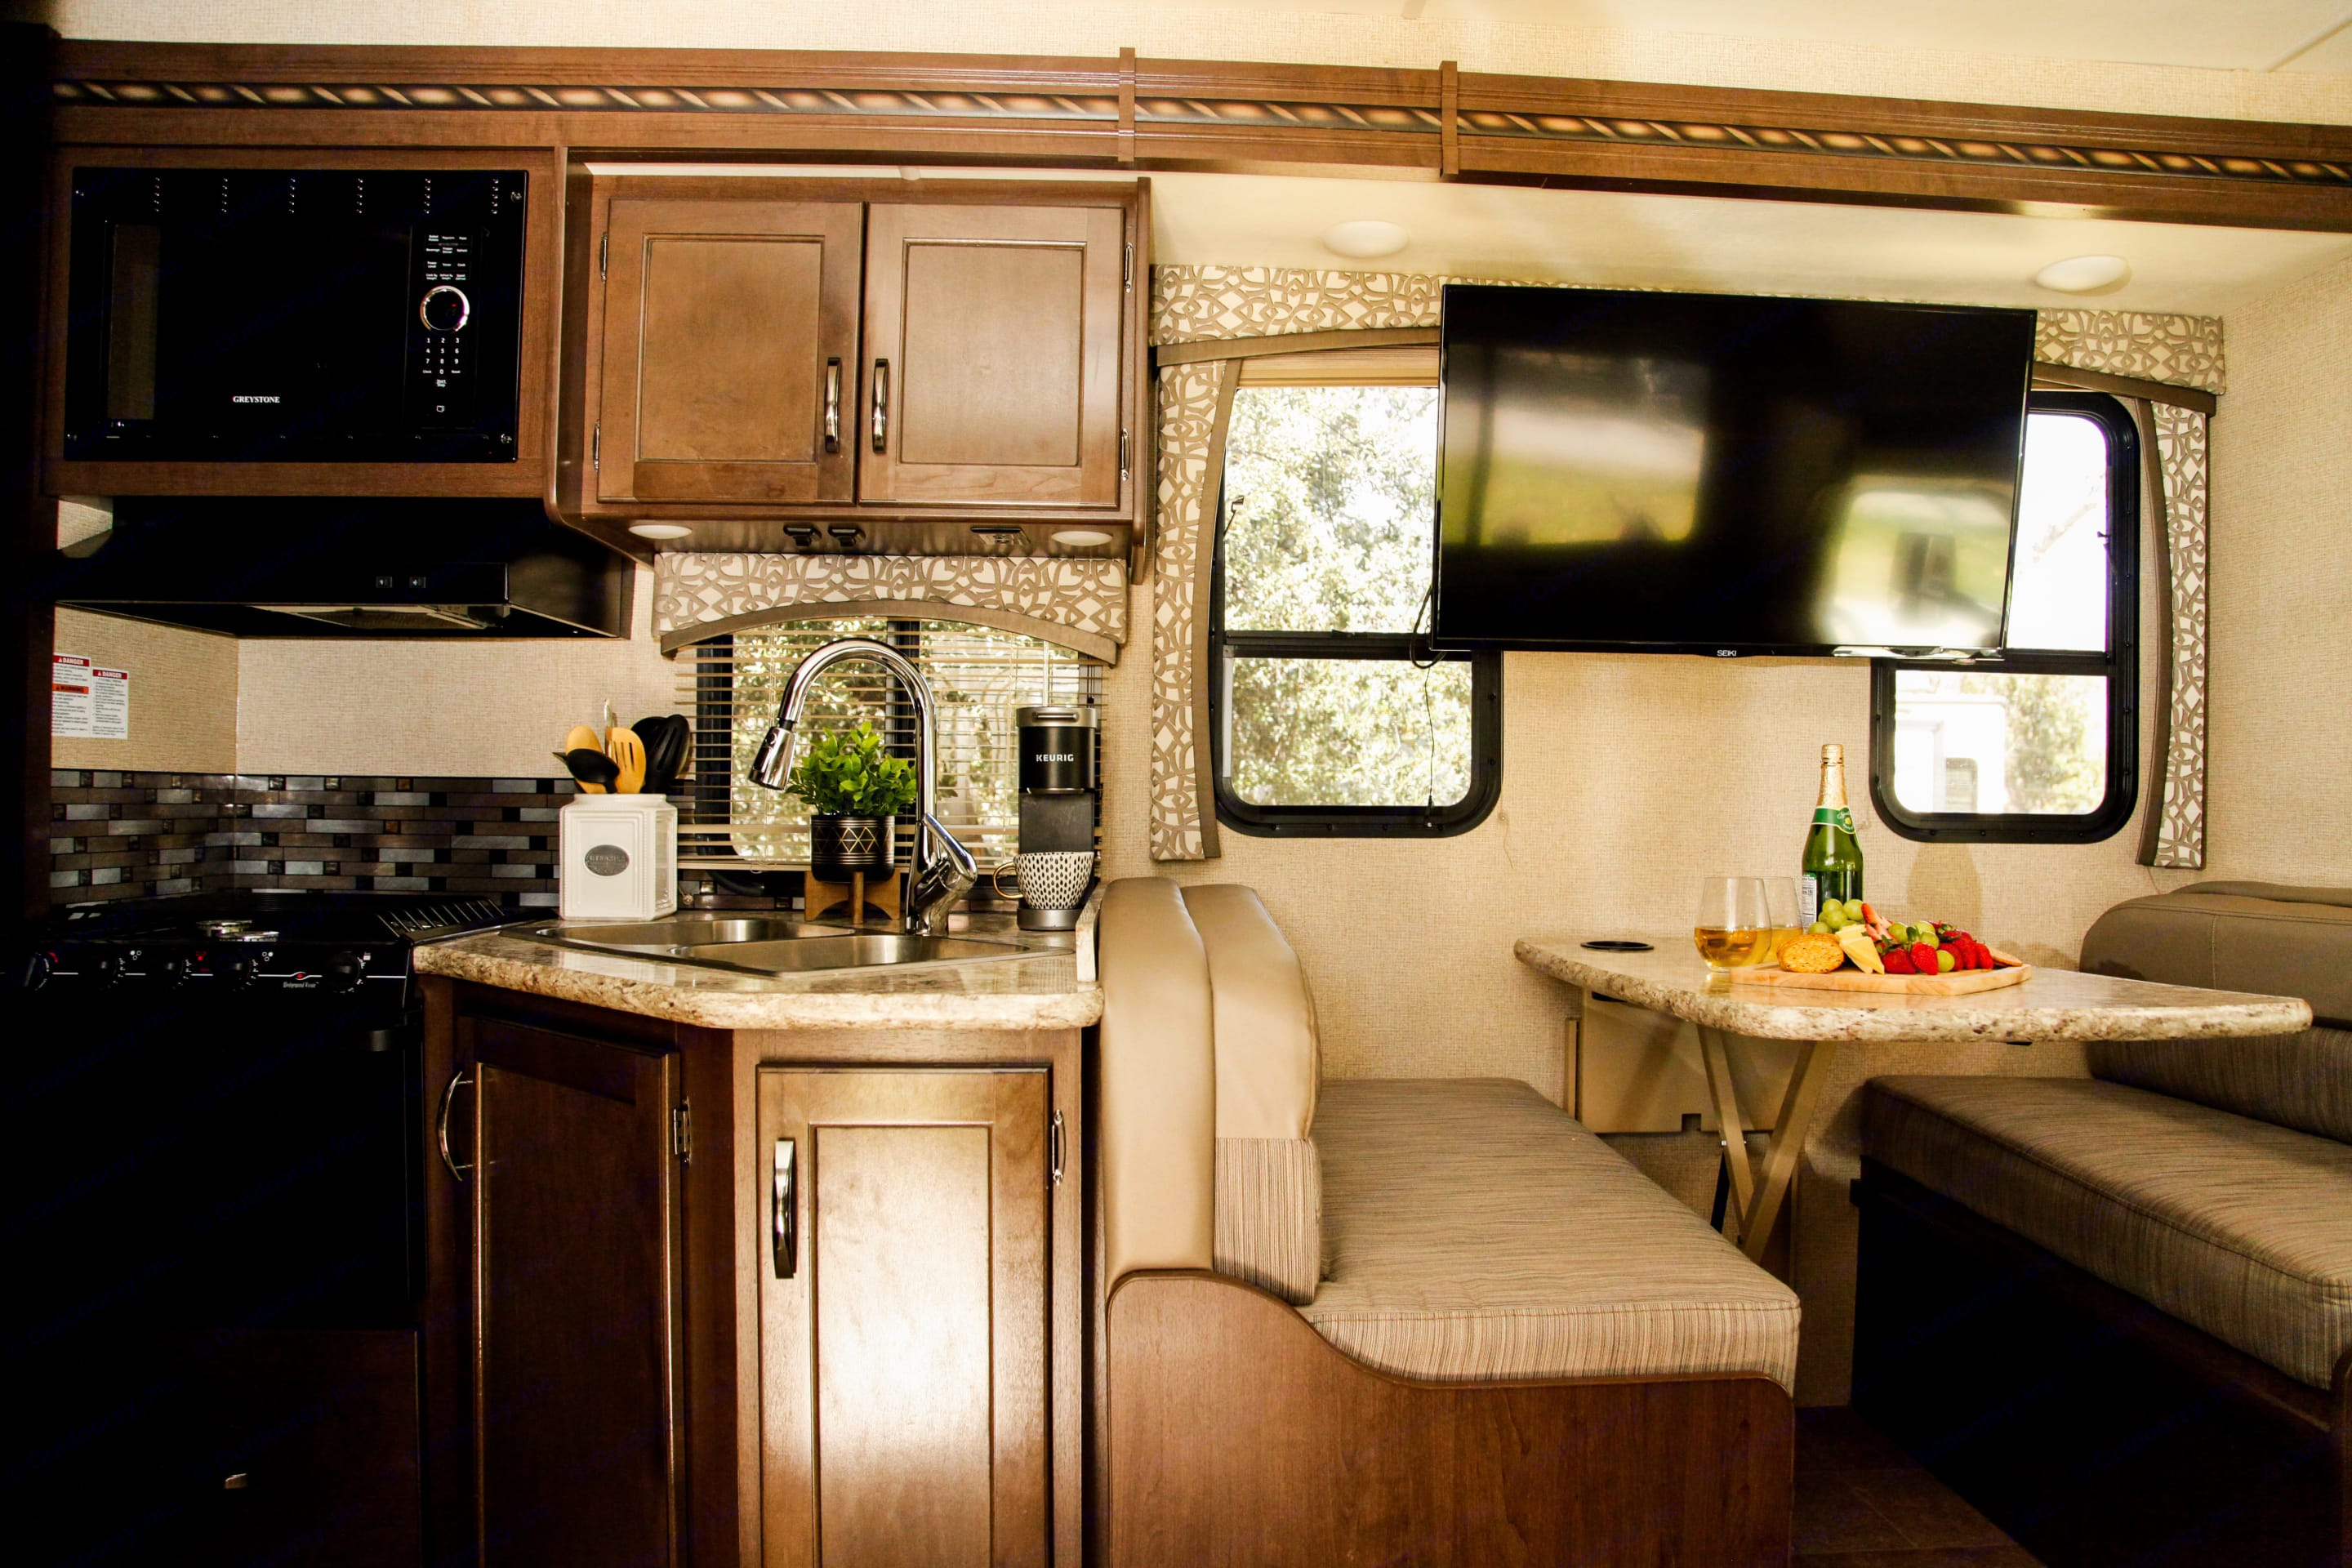 Keurig, toaster, cooking utensils, cutting board, can opener, potato peeler, wine opener, pot and pan included with the rental.. Thor Motor Coach Chateau 2017